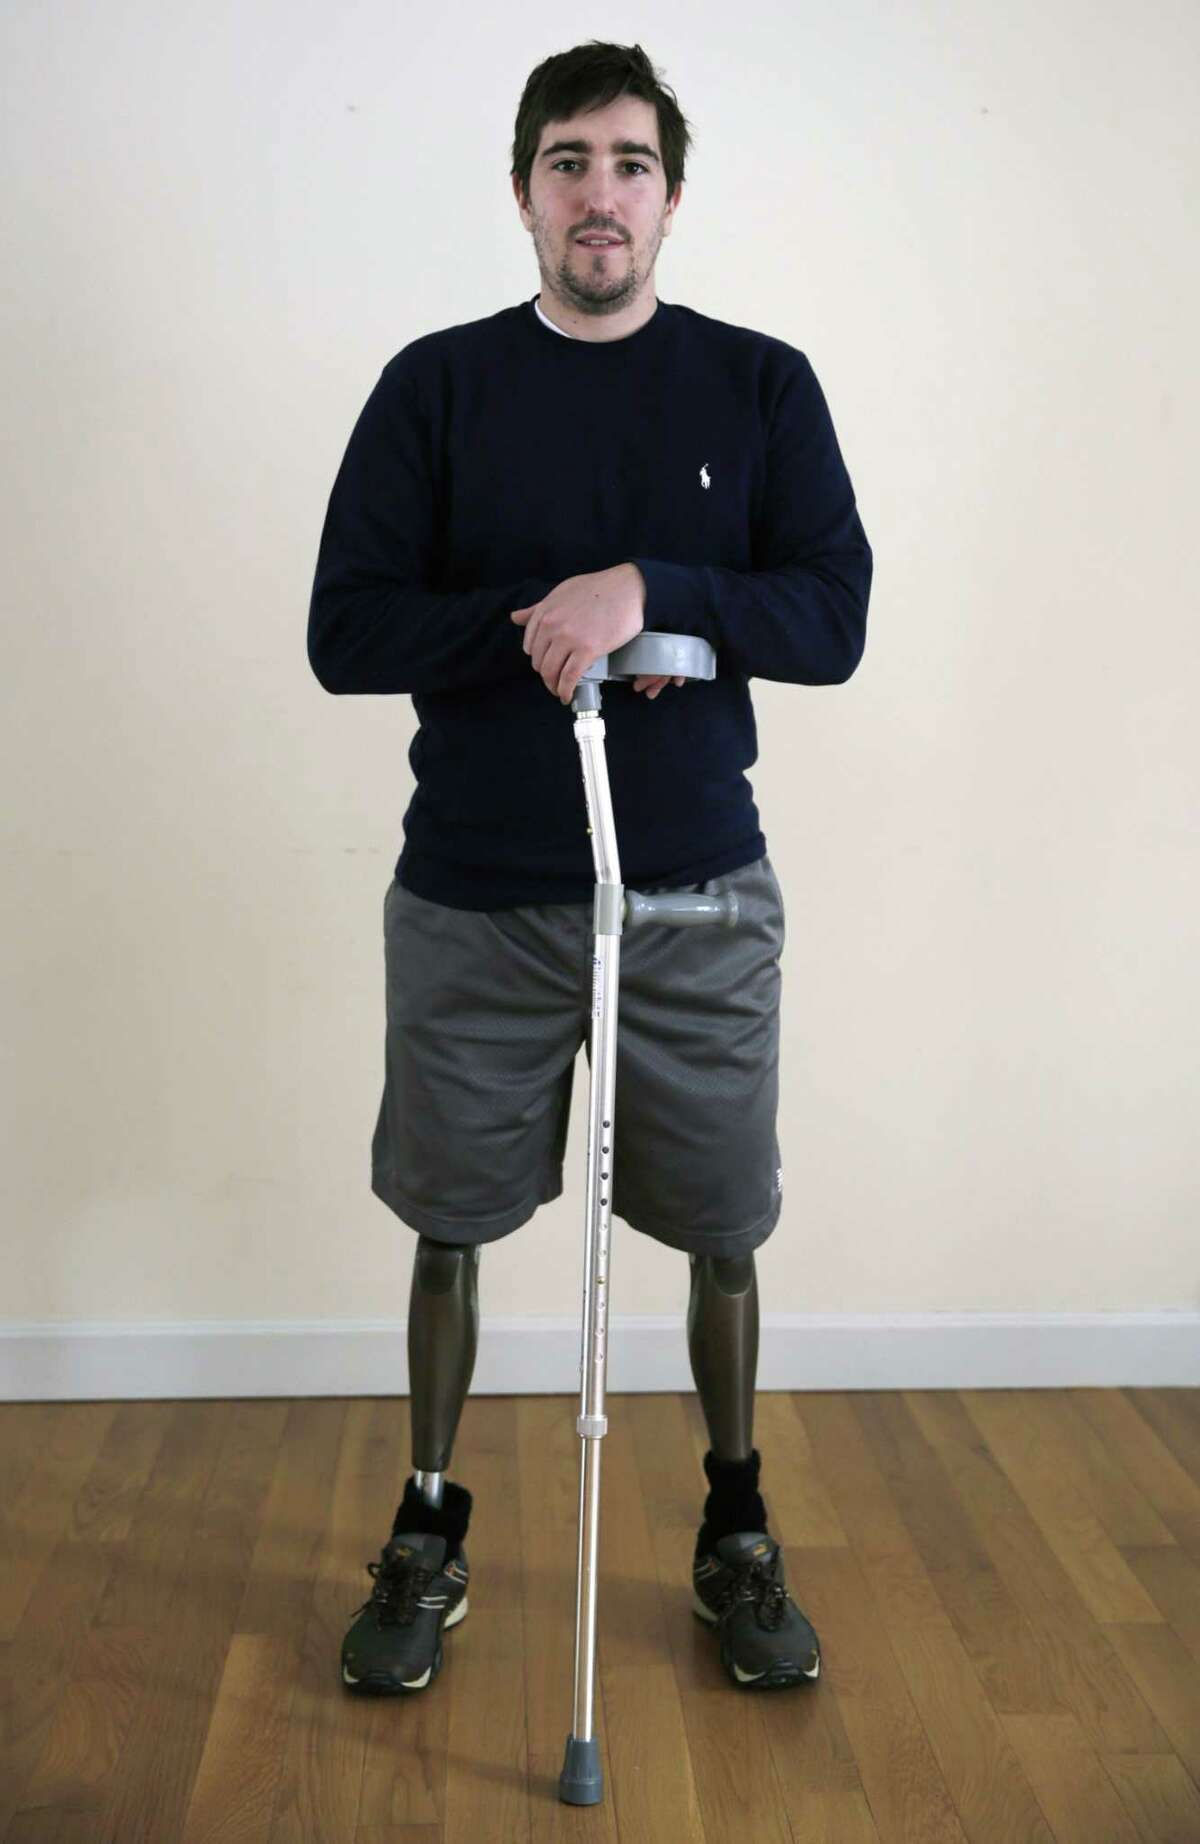 FILE - In this March 14, 2014 file photo, Jeff Bauman stands in his home in Carlisle, Mass. Bauman, who lost both of his legs in the Boston Marathon bombings, testified Thursday, March 5, 2015, in the federal death penalty trial of Dzhokhar Tsarnaev in Boston. Tsarnaev is charged with conspiring with his brother to place twin bombs near the finish line of the race, killing three and injuring 260 people. (AP Photo/Charles Krupa, File)